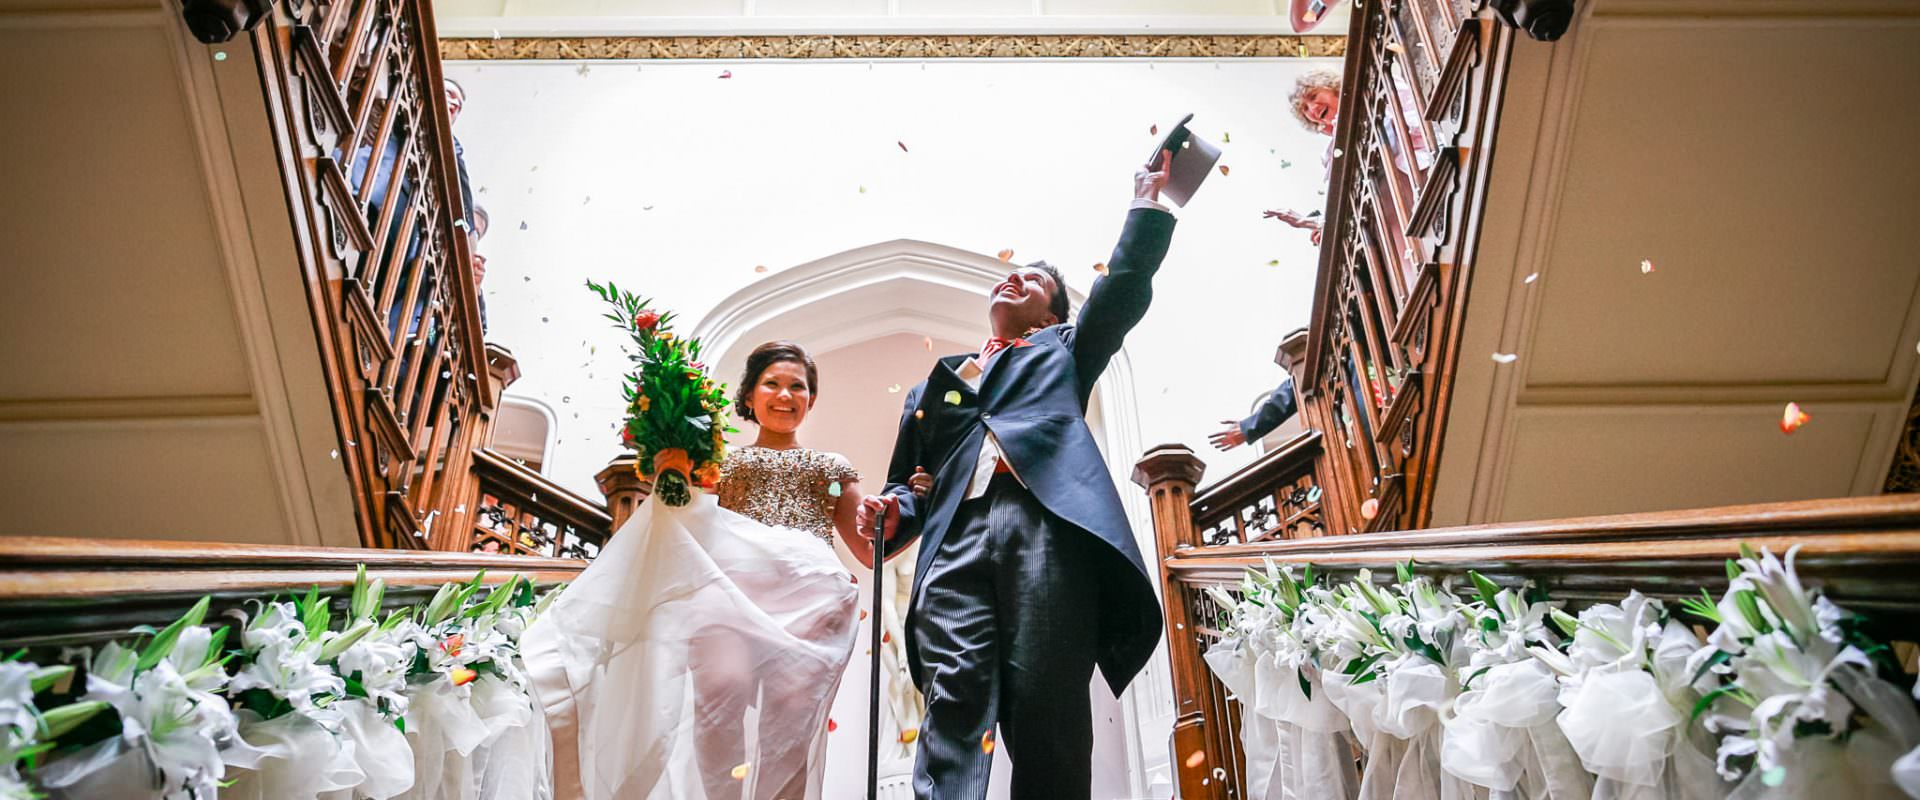 Somerset wedding photographer couple under shower of confetti